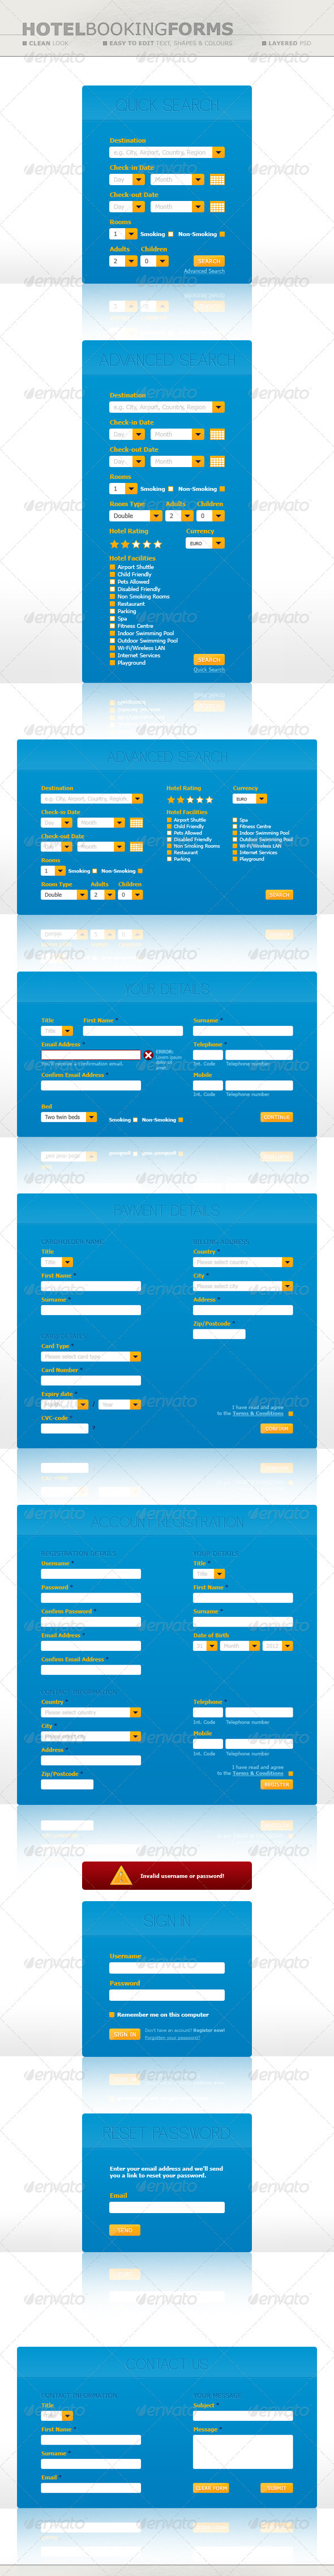 Hotel Booking Forms - Forms Web Elements